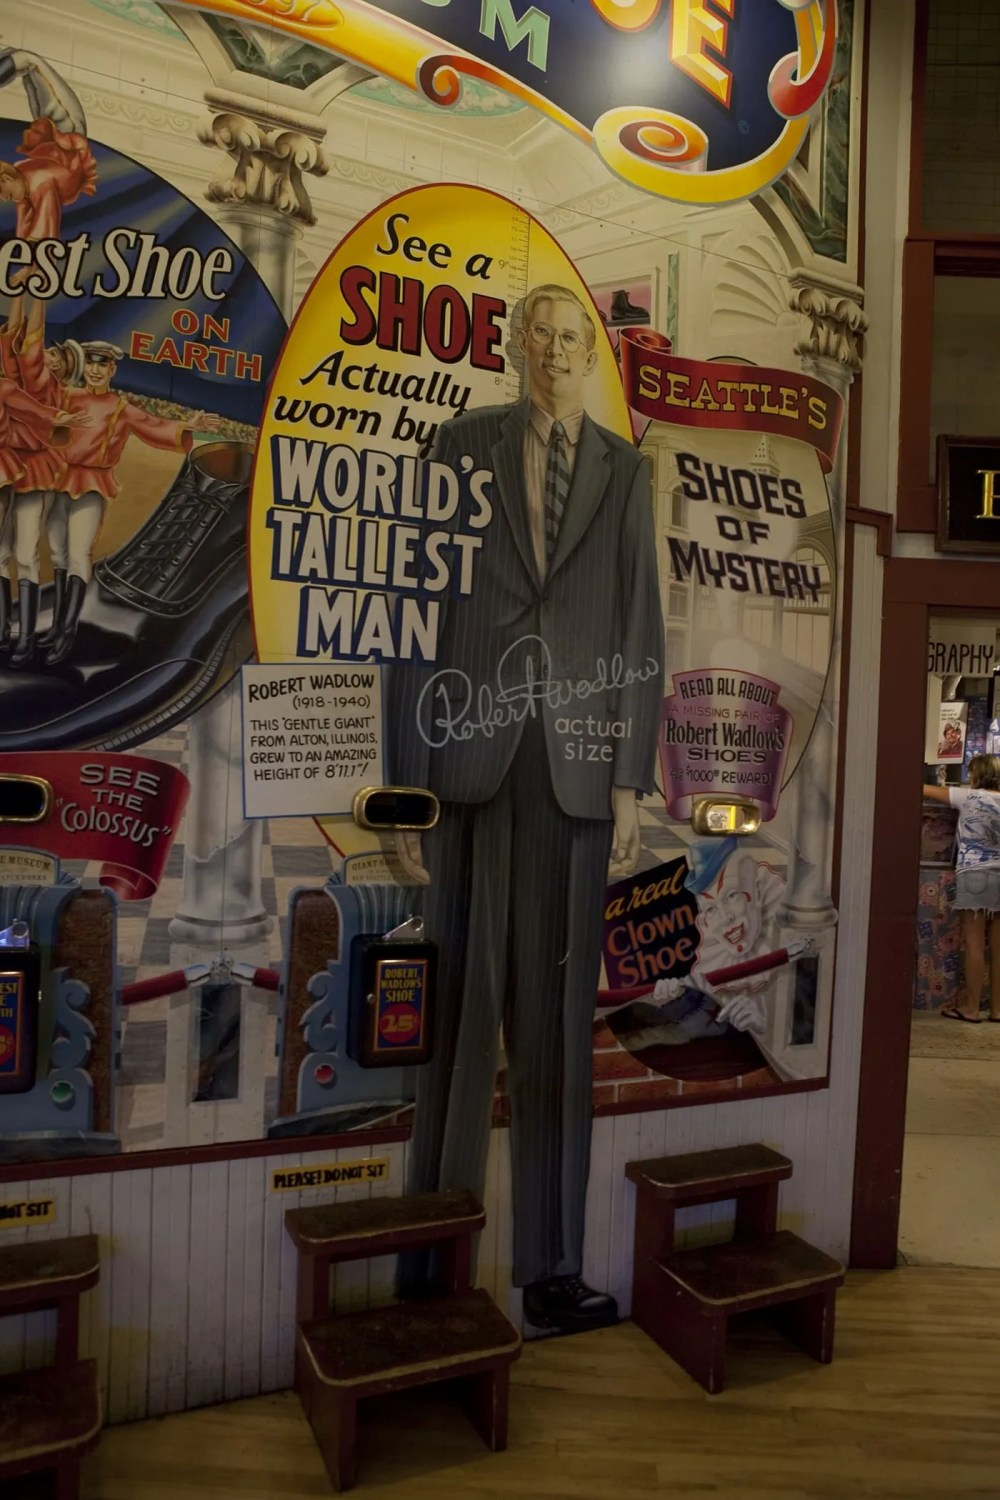 A shoe belonging to Robert Wadlow, the world's tallest man, at The World Famous Giant Shoe Museum in Pike Place Market in Seattle, Washington.